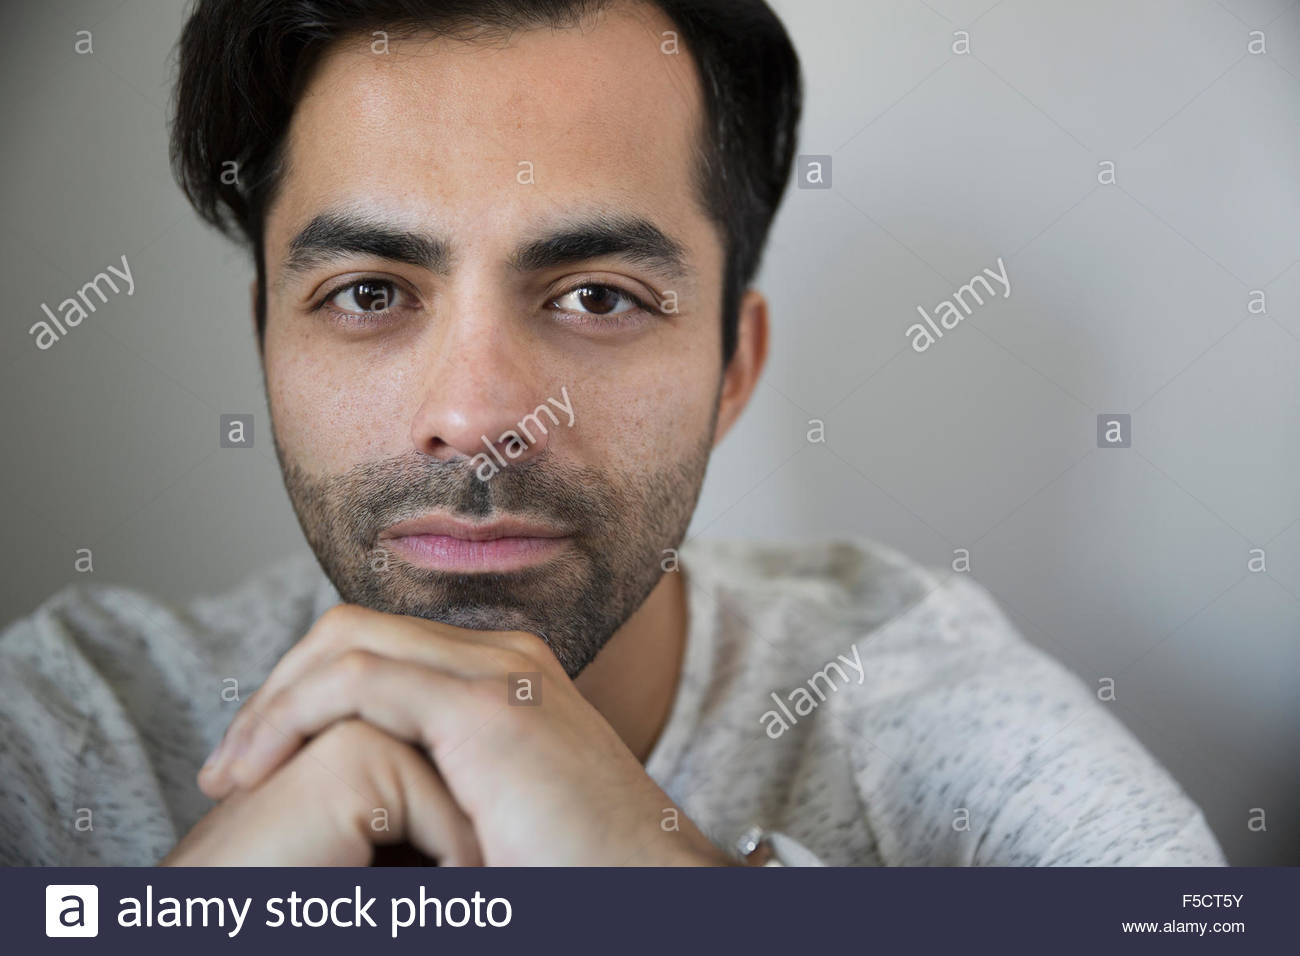 Portrait serious man with black hair and stubble - Stock Image